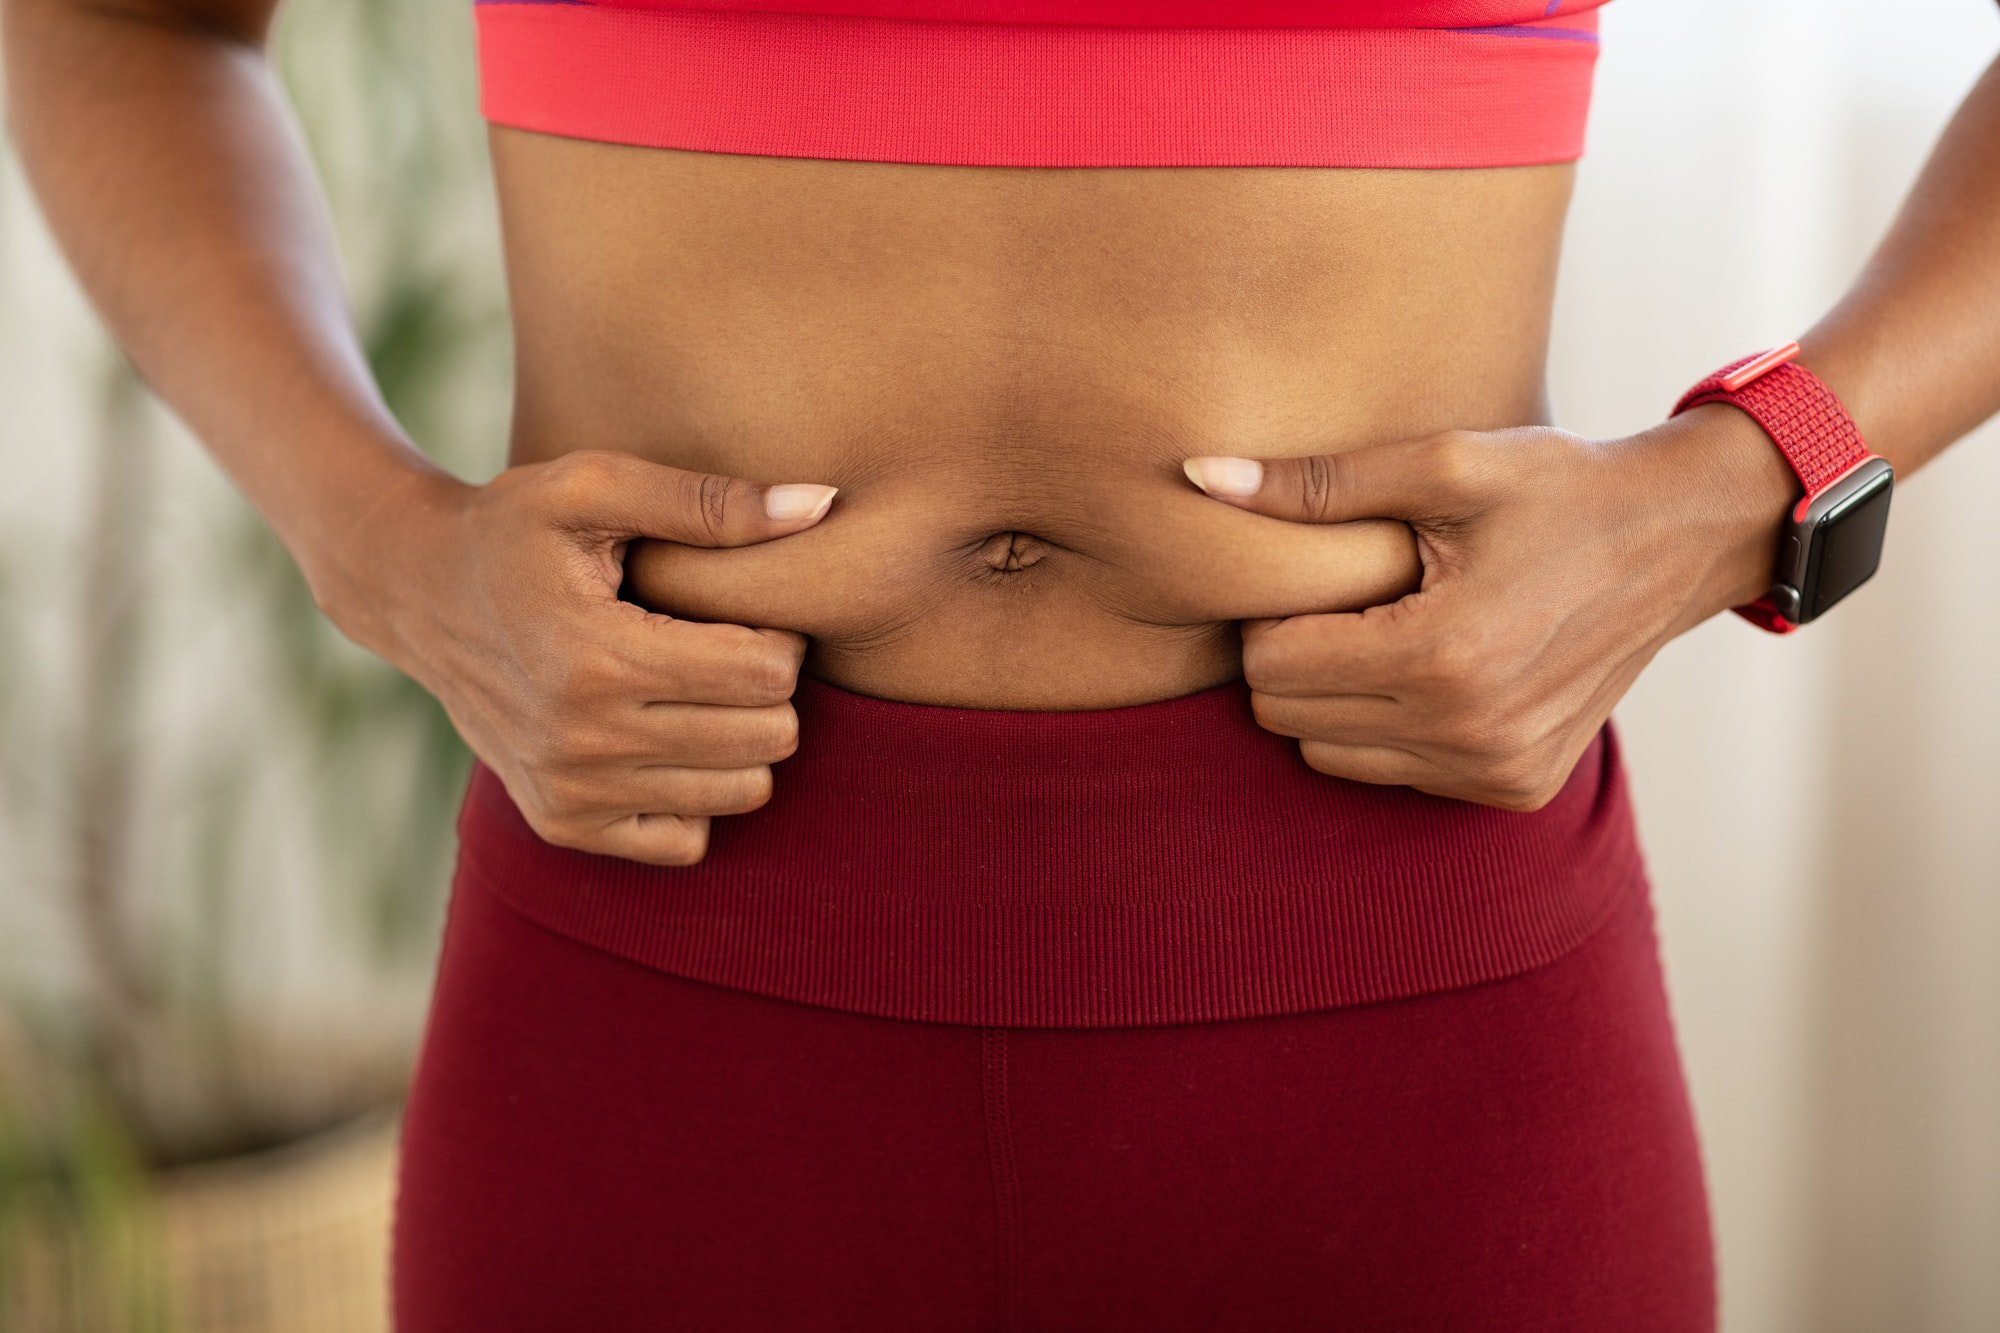 Black Woman Touching Belly Fat Losing Weight Standing Indoors, Cropped